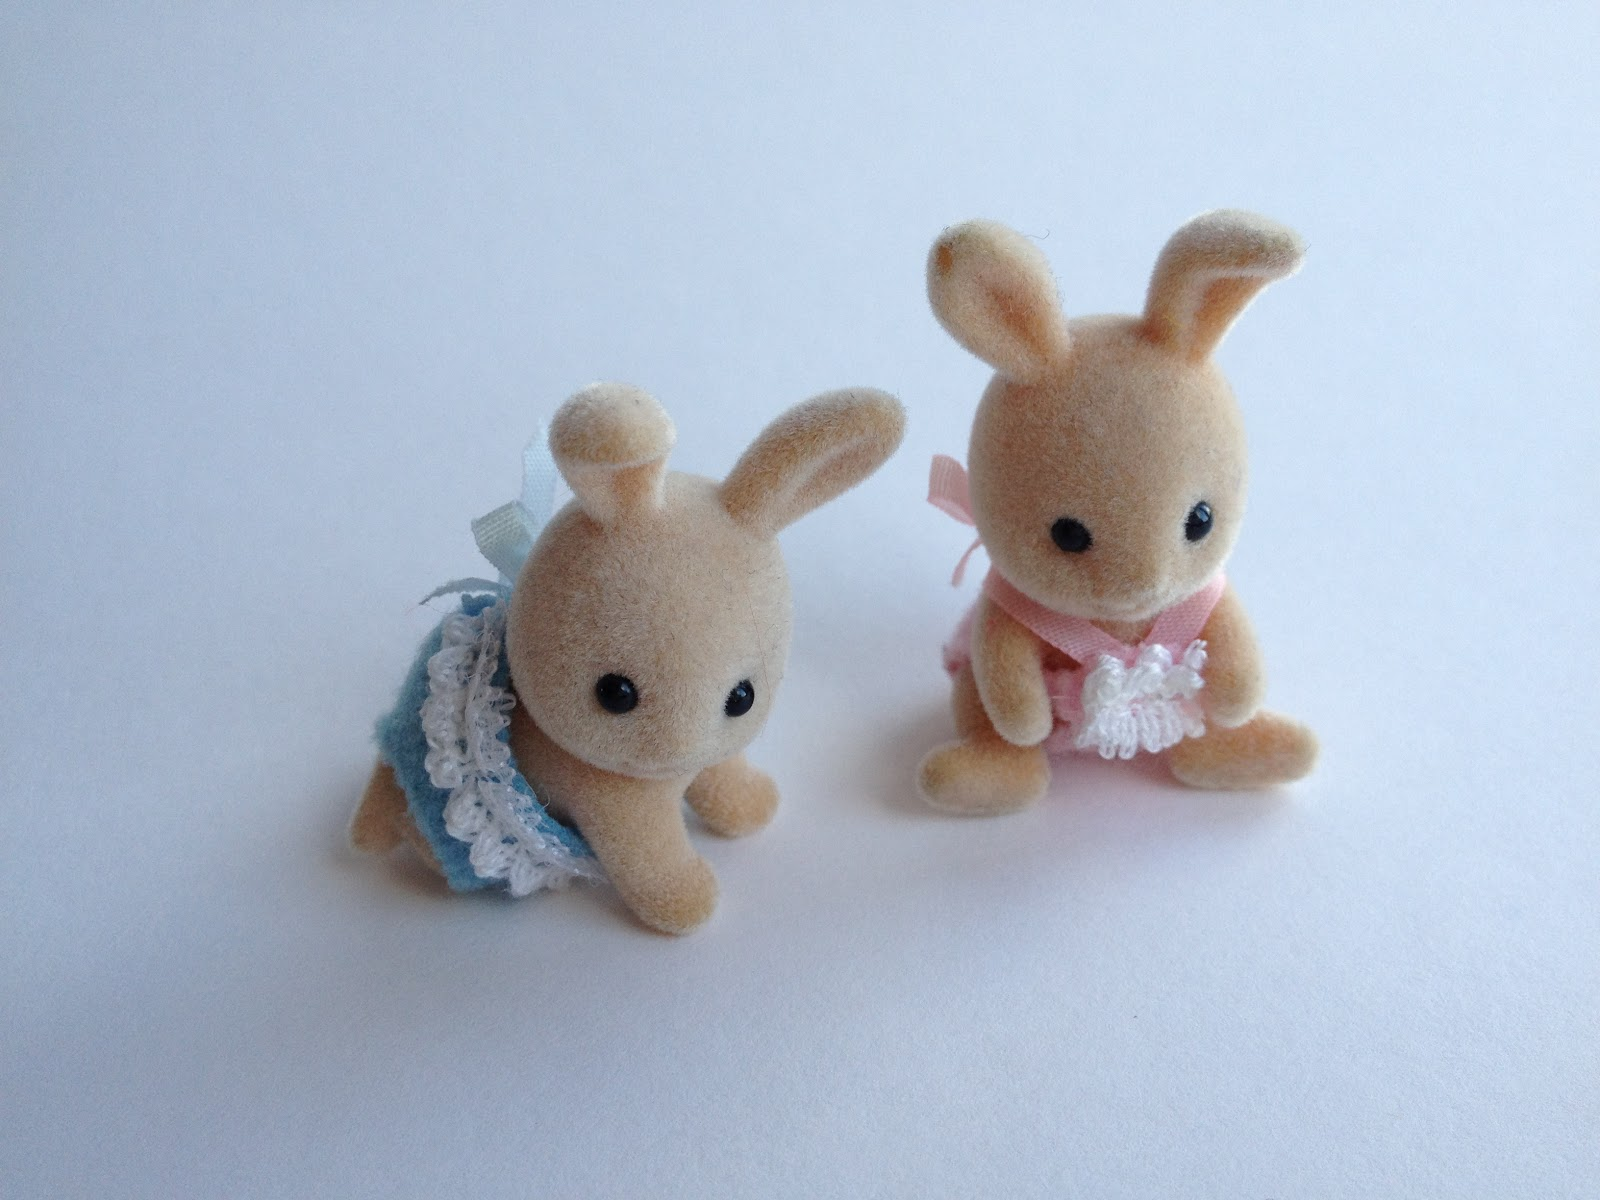 Lily S Sylvanian Families Blog My Figures